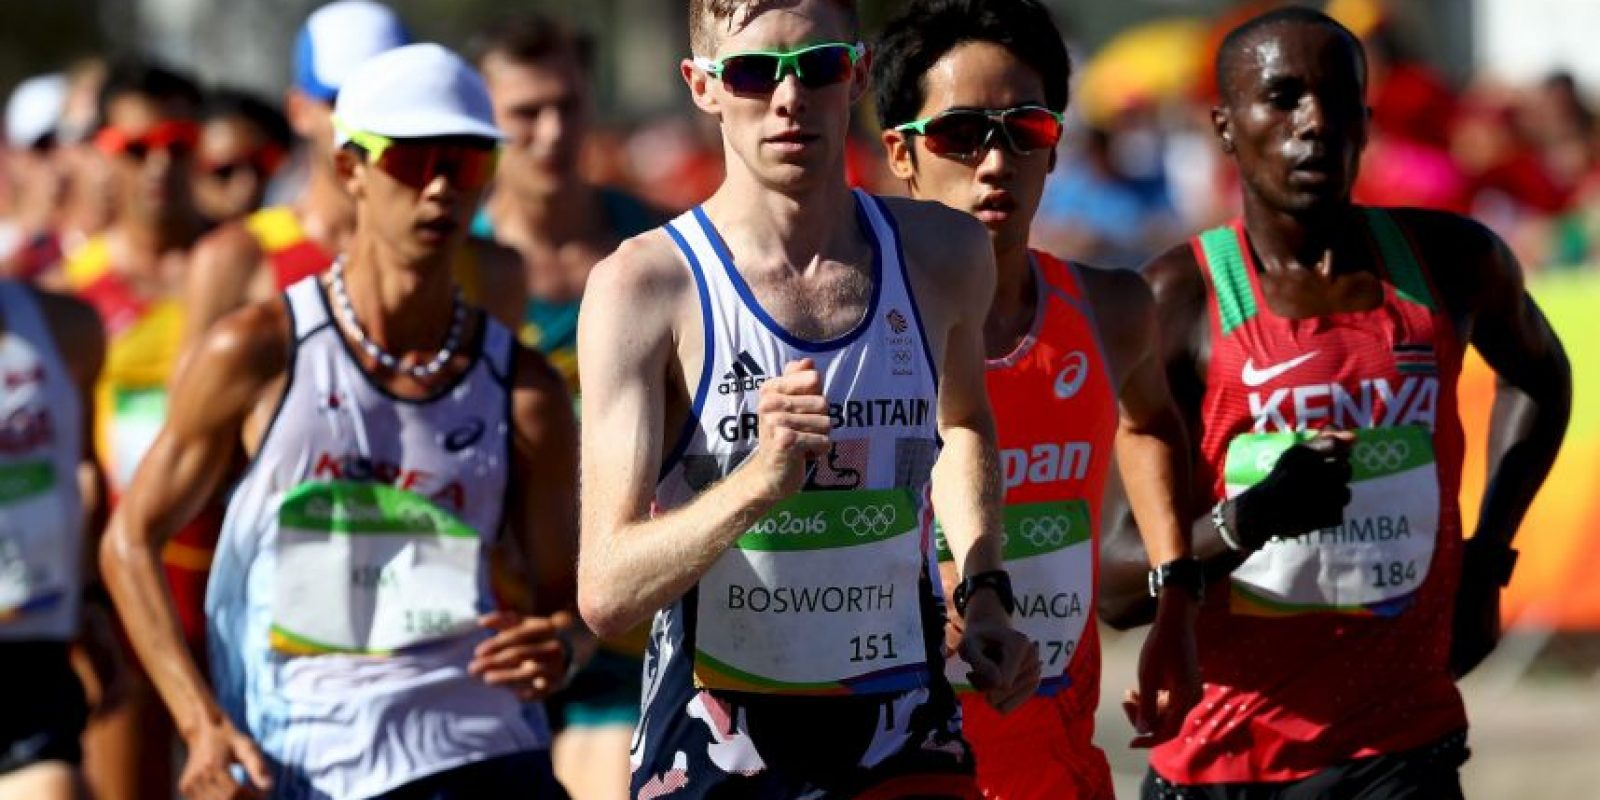 El atleta Tom Bosworth le pidió matrimonio a su novio en las playas de Brasil Foto: Getty Images